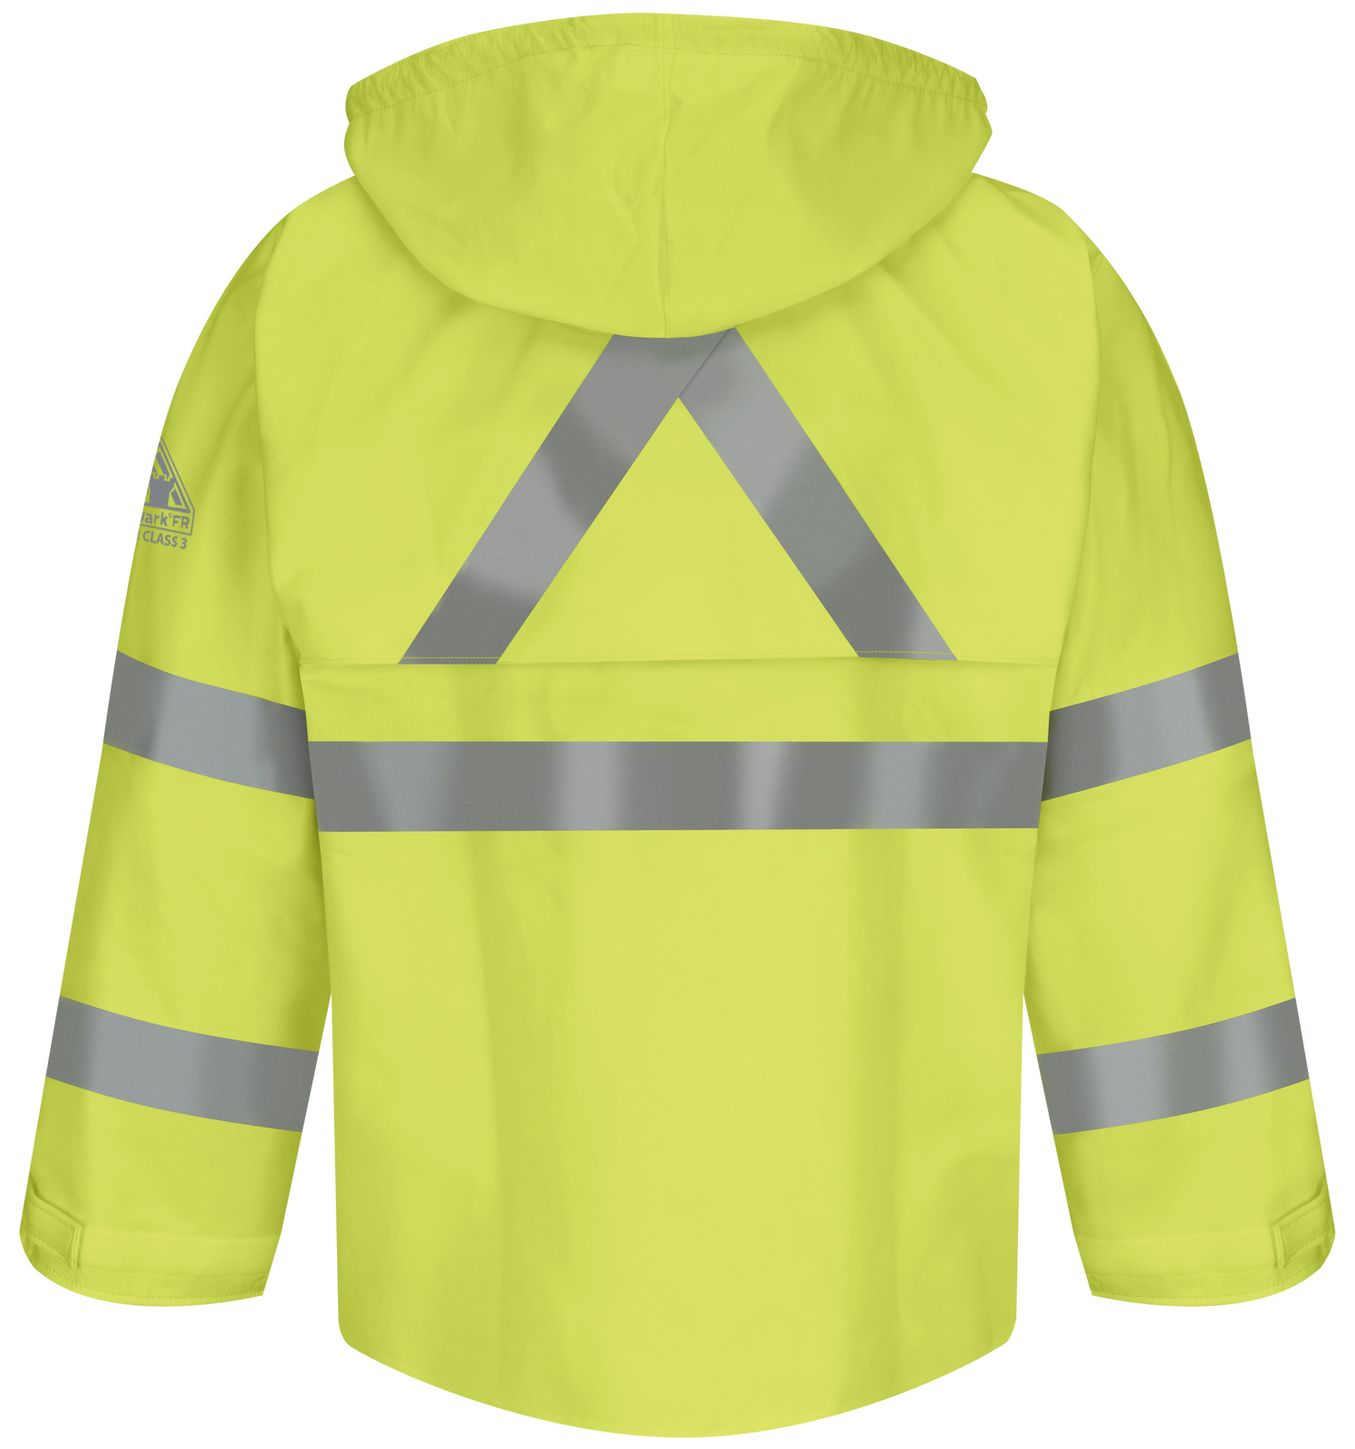 bulwark-fr-hi-visibility-rain-jacket-jxn4-with-hood-yellow-green-back.jpg